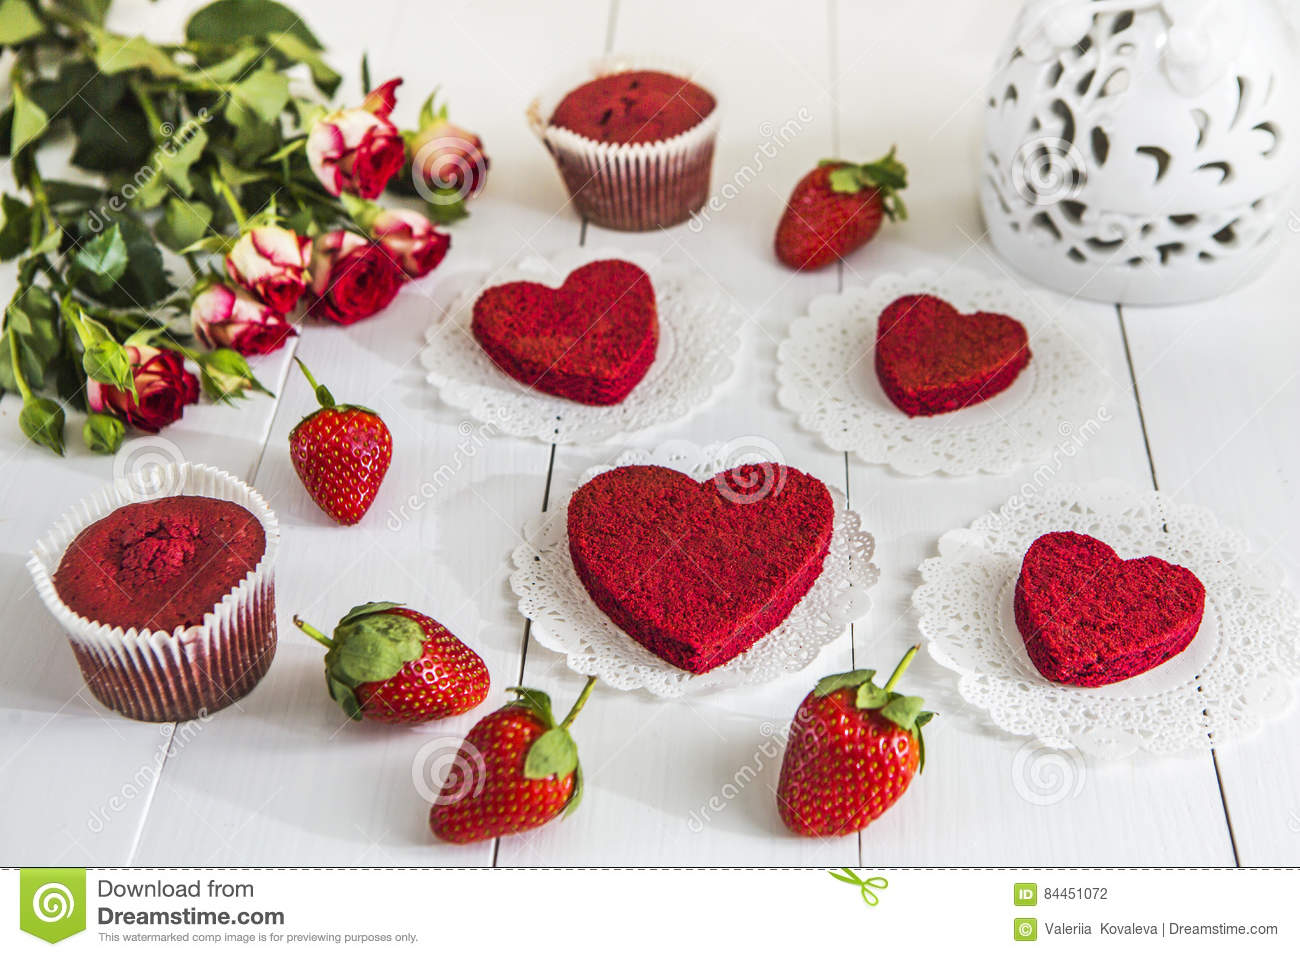 Red cake without cream `red velvet` on a white wooden table, decorated with strawberries, roses and white openwork vase with a hea